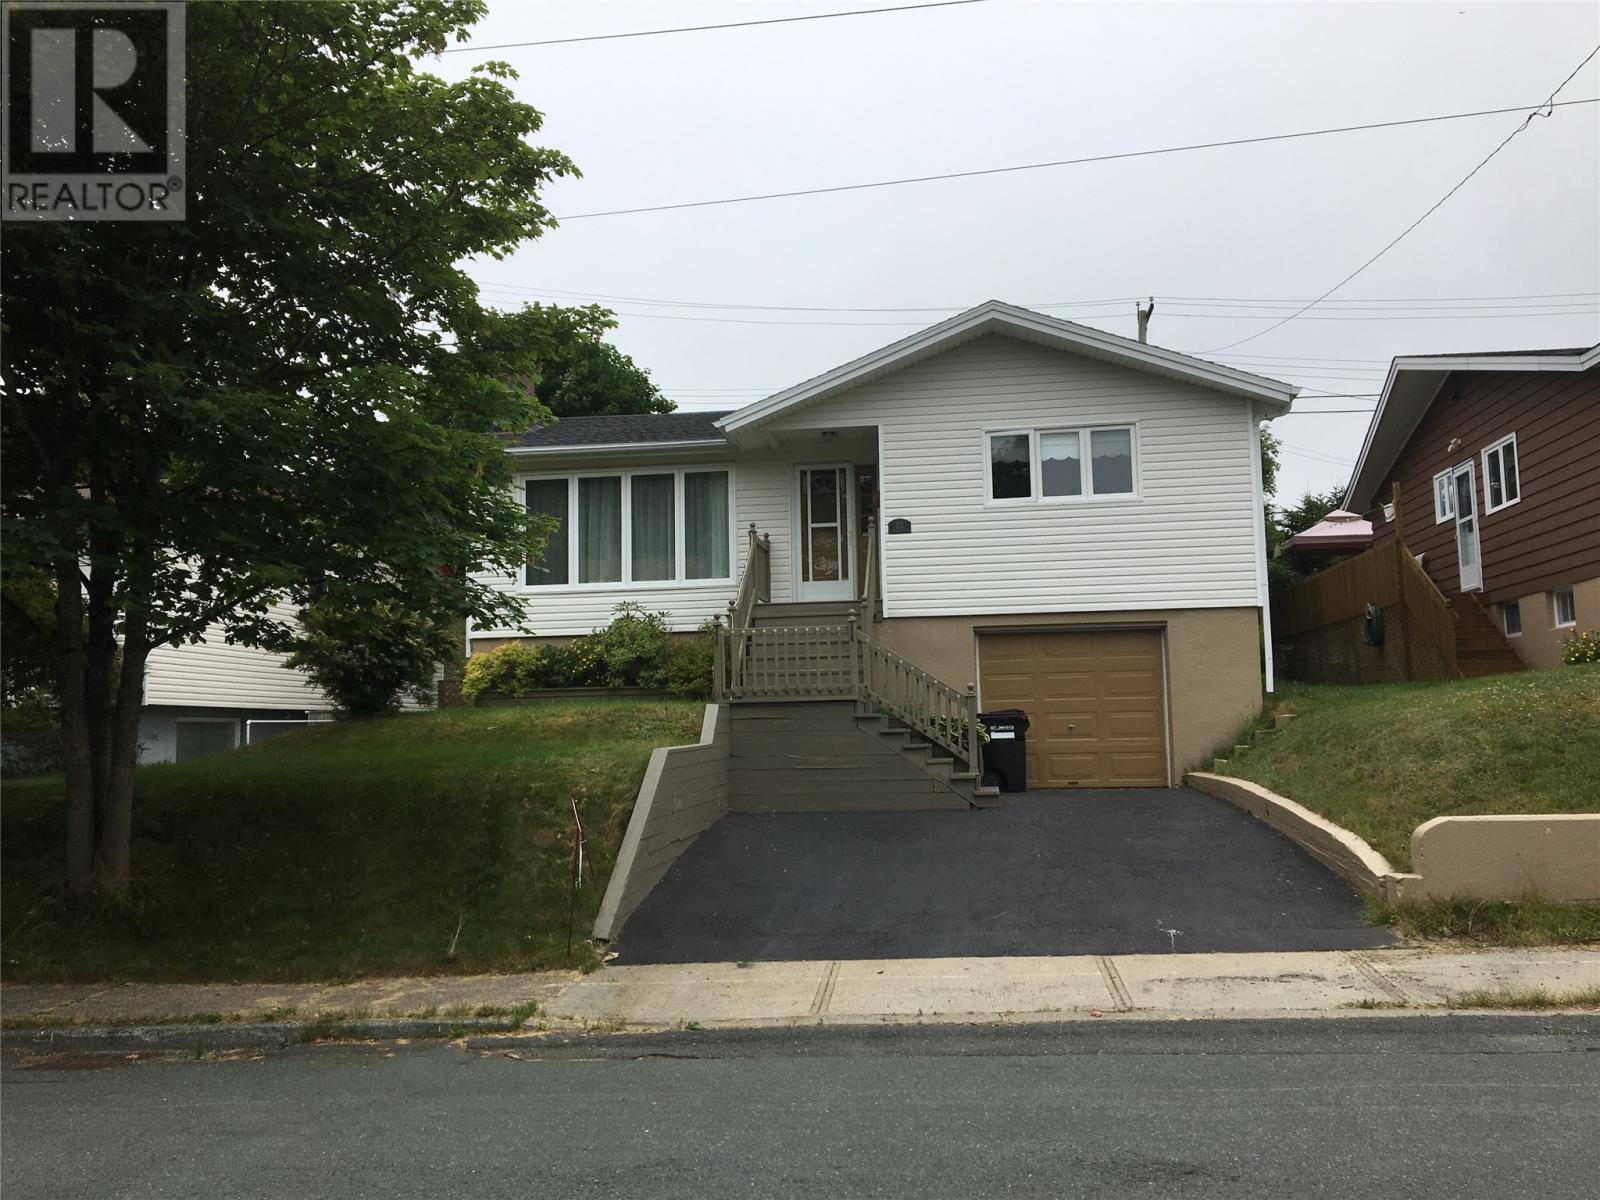 House for sale at 8 Macpherson Ave St. John's Newfoundland - MLS: 1210150